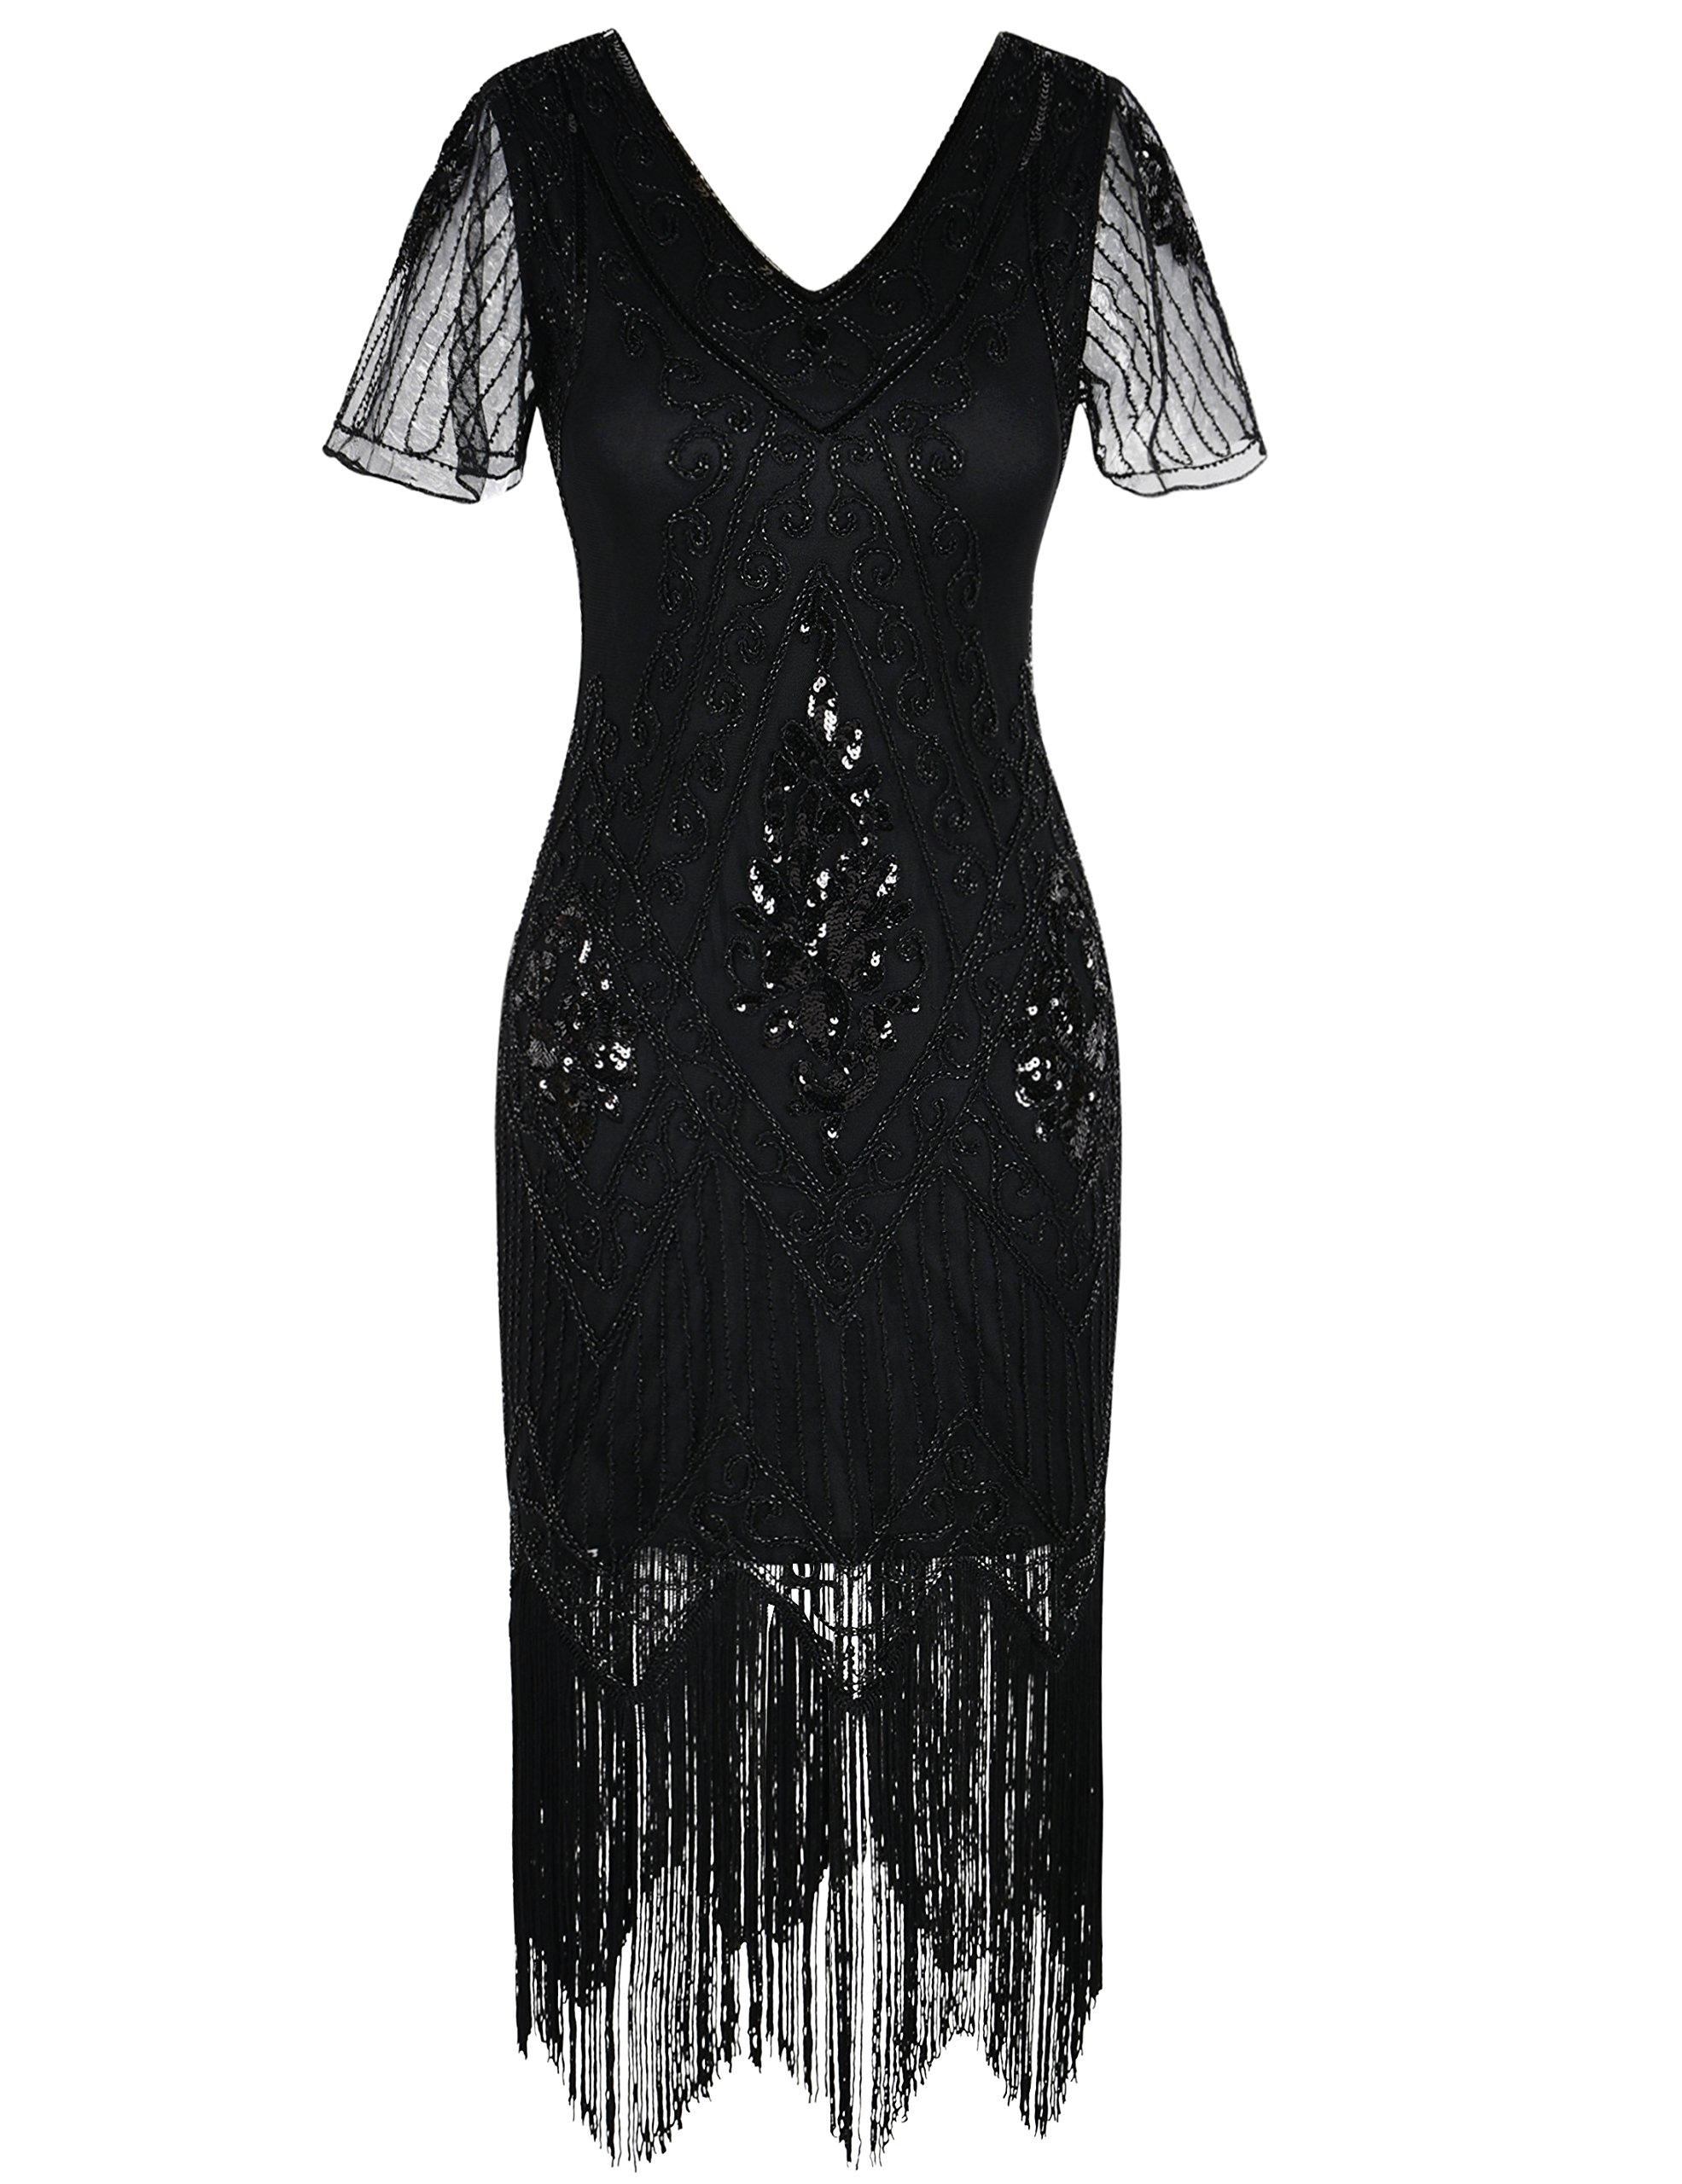 PrettyGuide Womens 1920s Dress Sequin Art Deco Flapper Dress with Sleeve